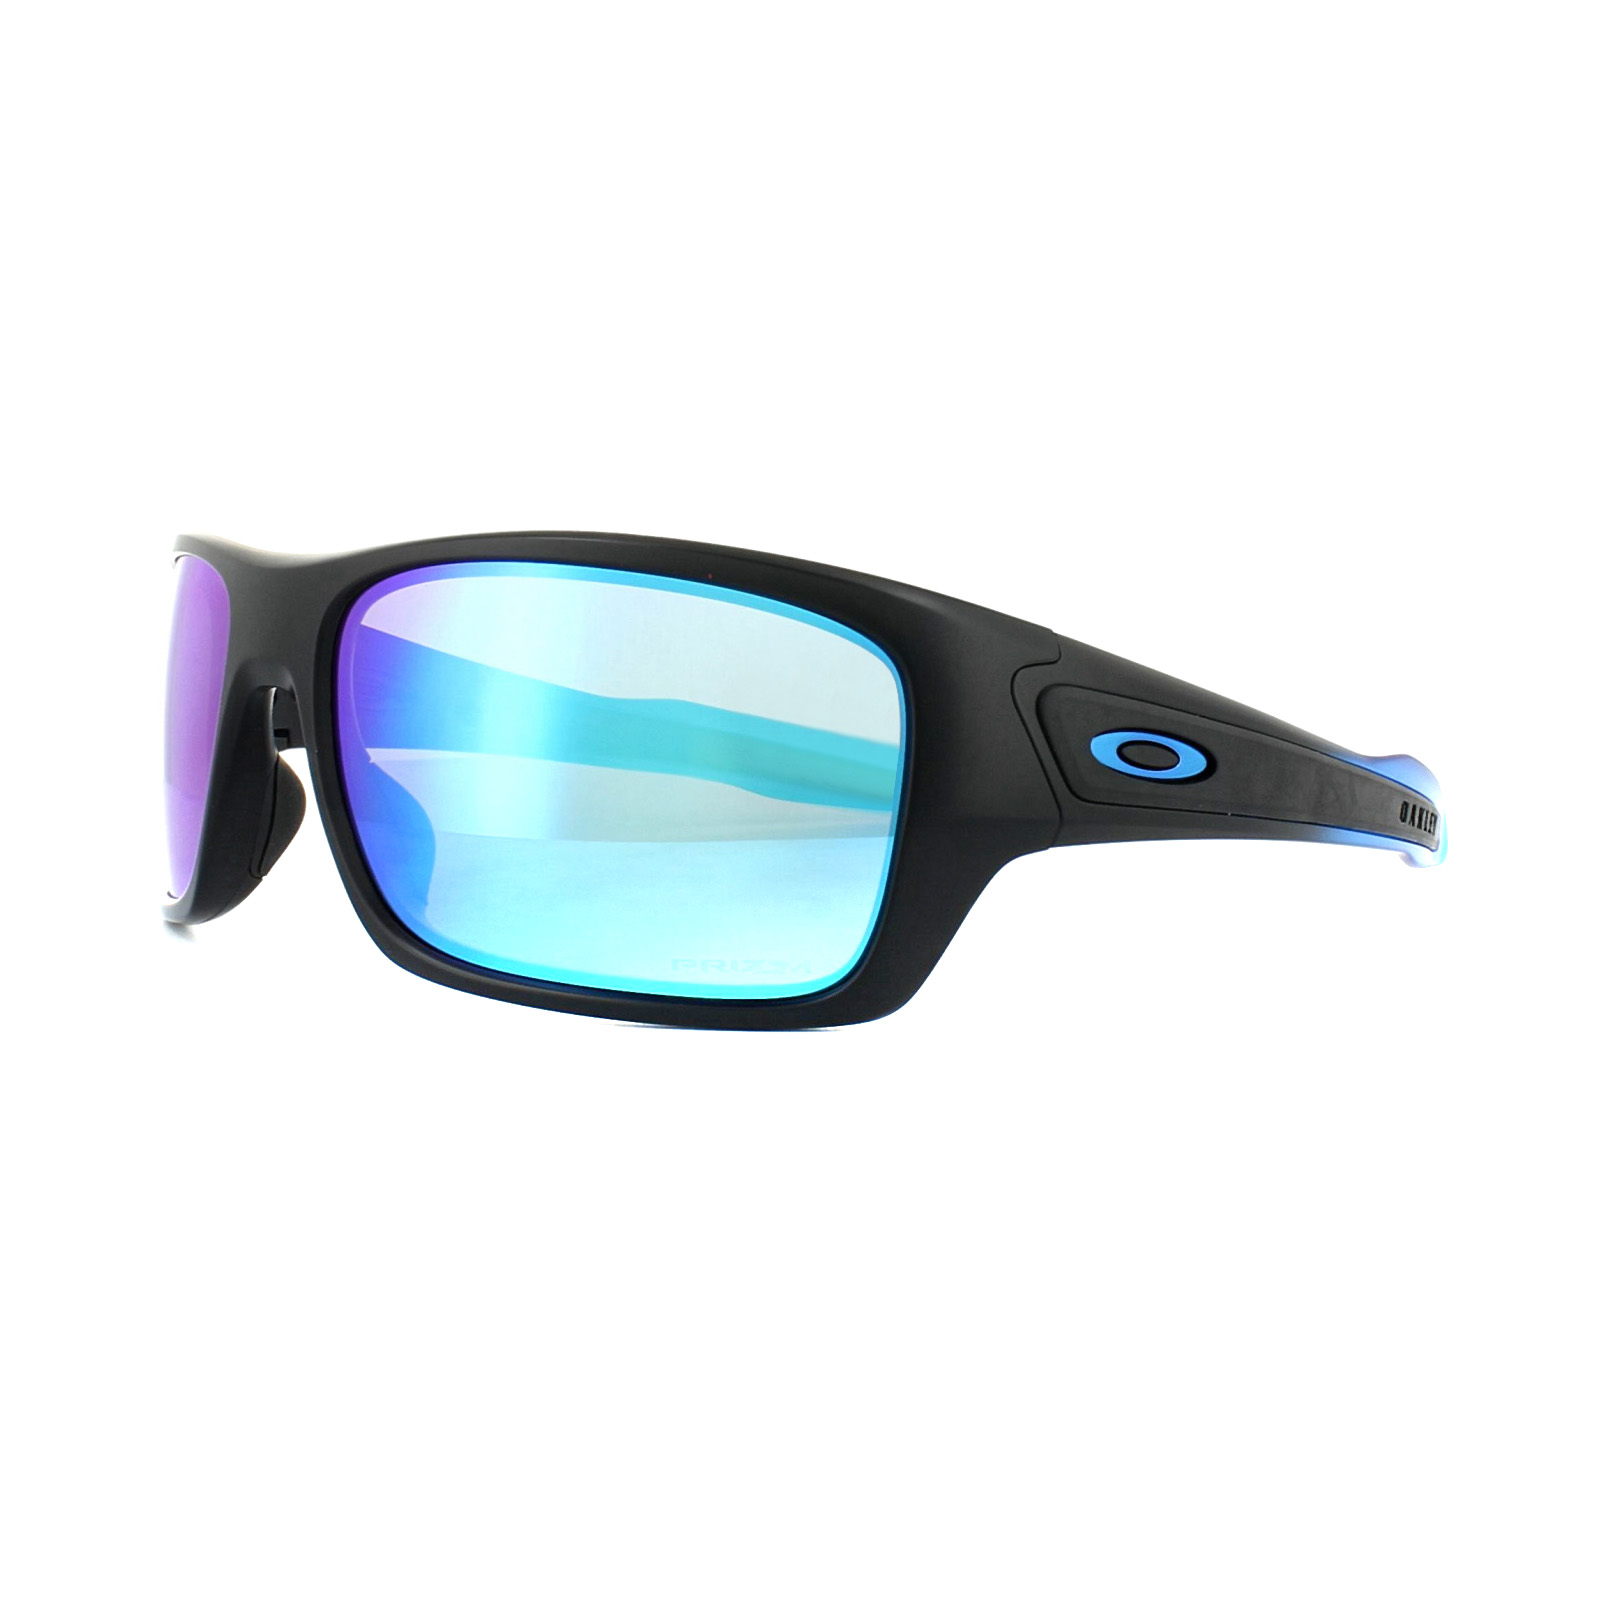 Details about Oakley Sunglasses Turbine OO9263-36 Sapphire Fade Prizm  Sapphire Polarized 826bf14d5f